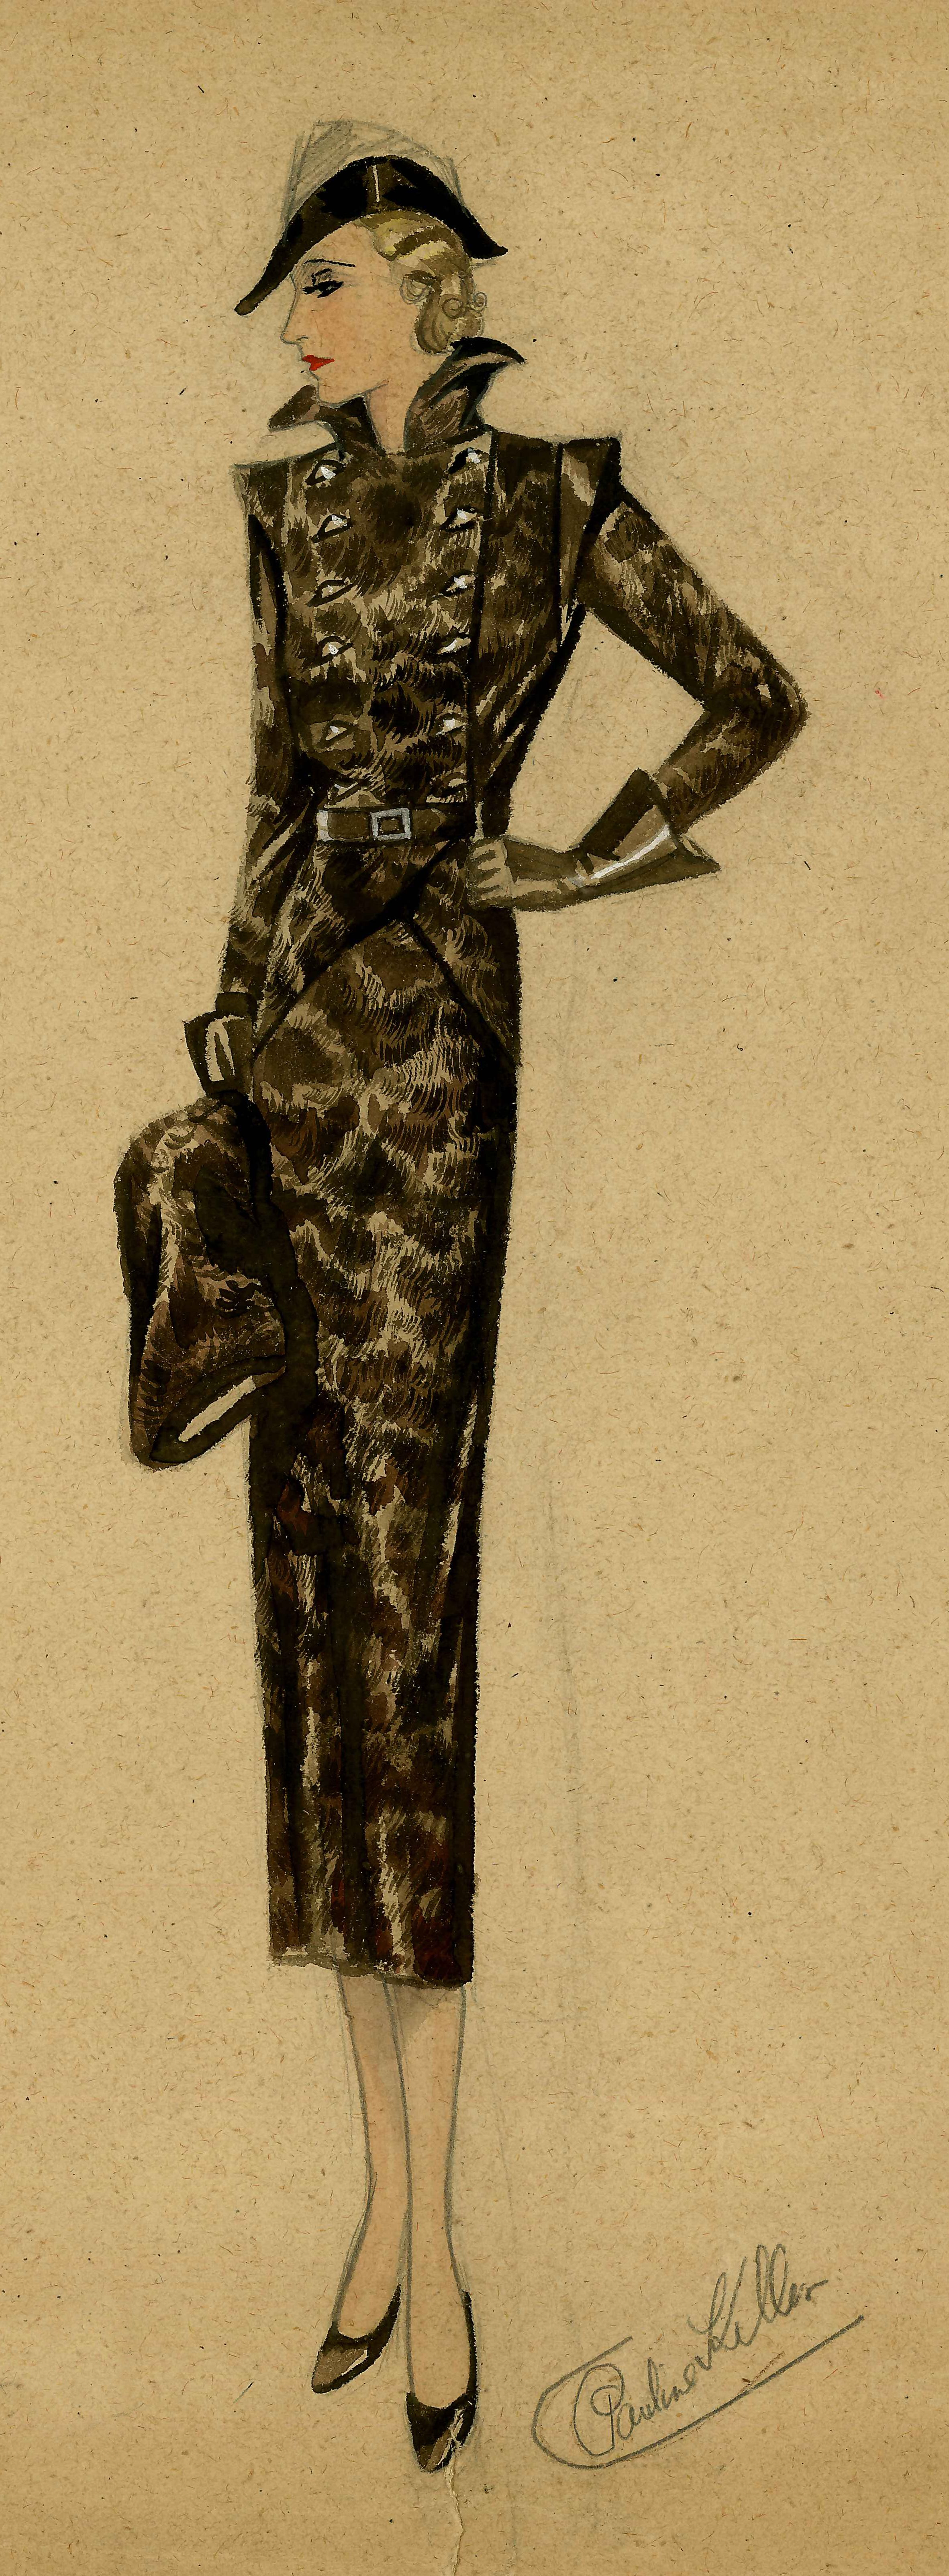 #Fashion illustration 1930's suit #womenswear from Grafton Academy Dublin